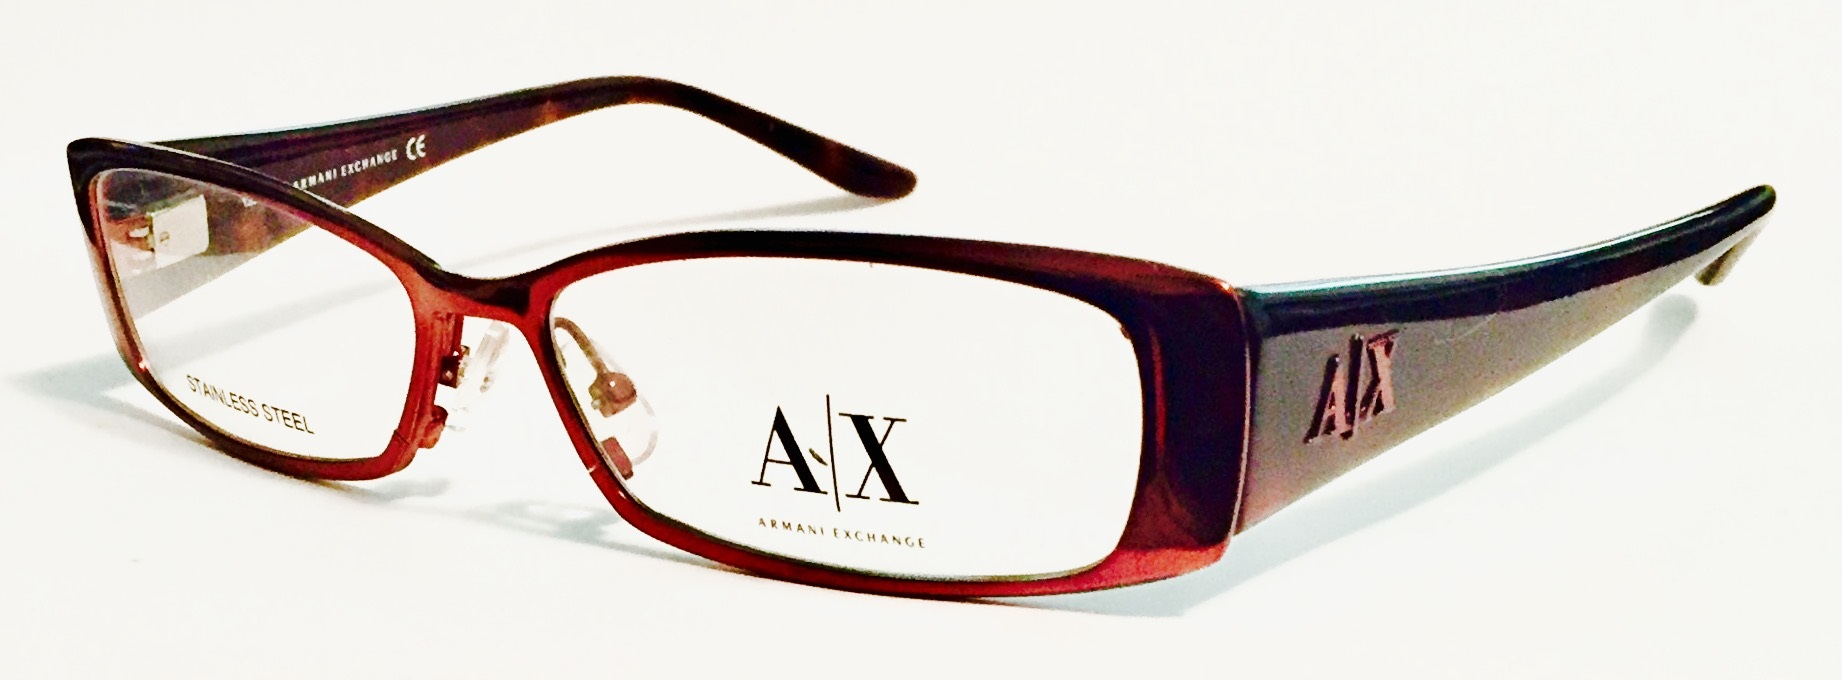 CLEARANCE ARMANI EXCHANGE 217 NYN00